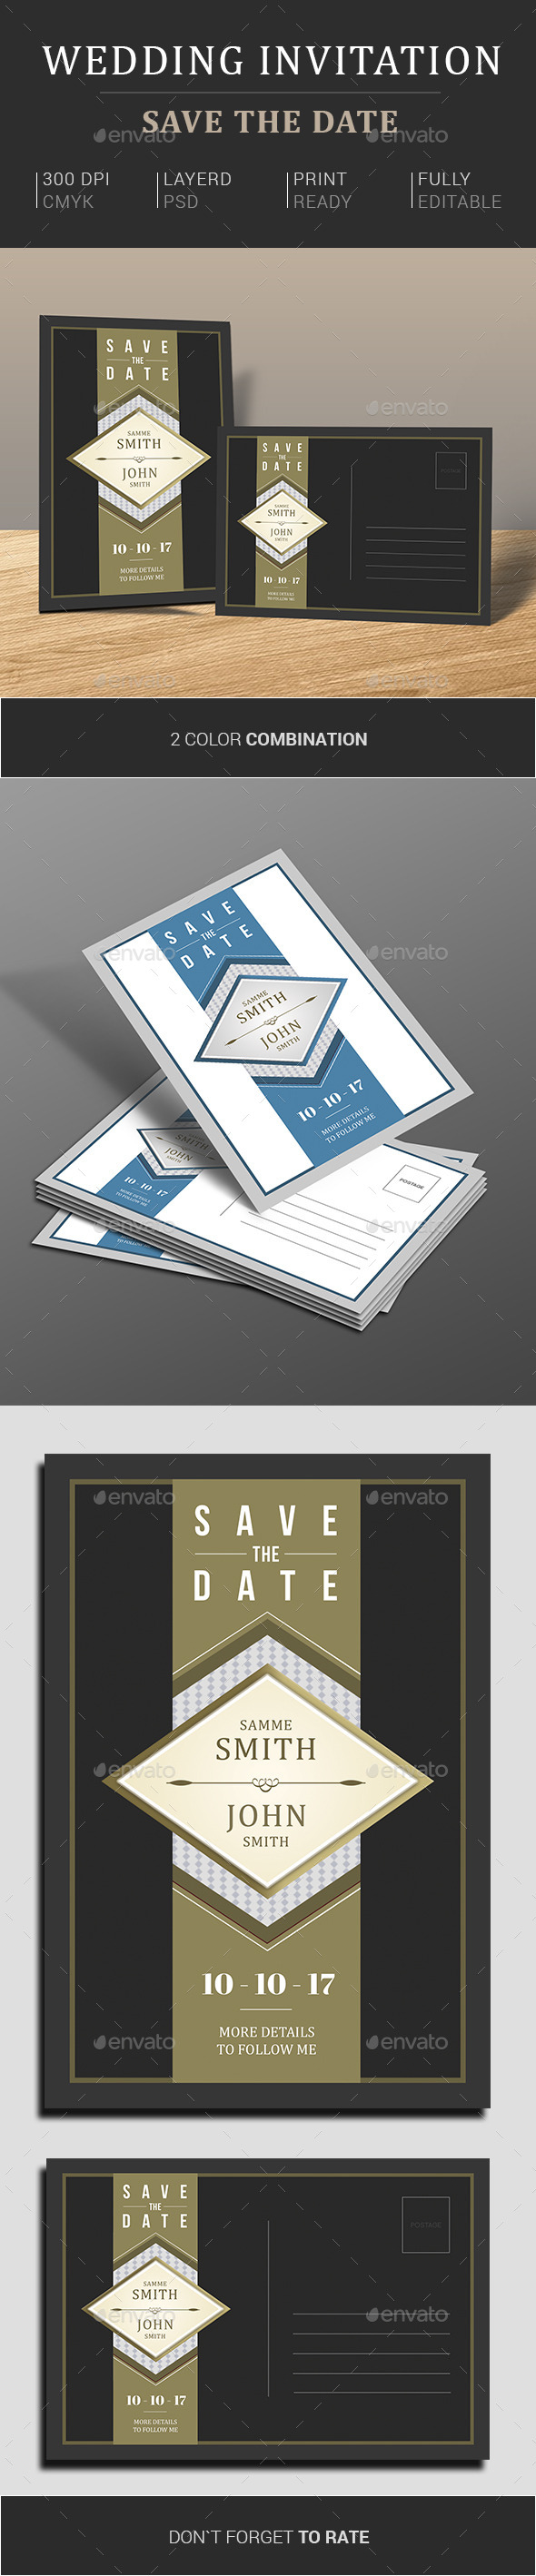 Wedding Invitation & Save The Date - Cards & Invites Print Templates